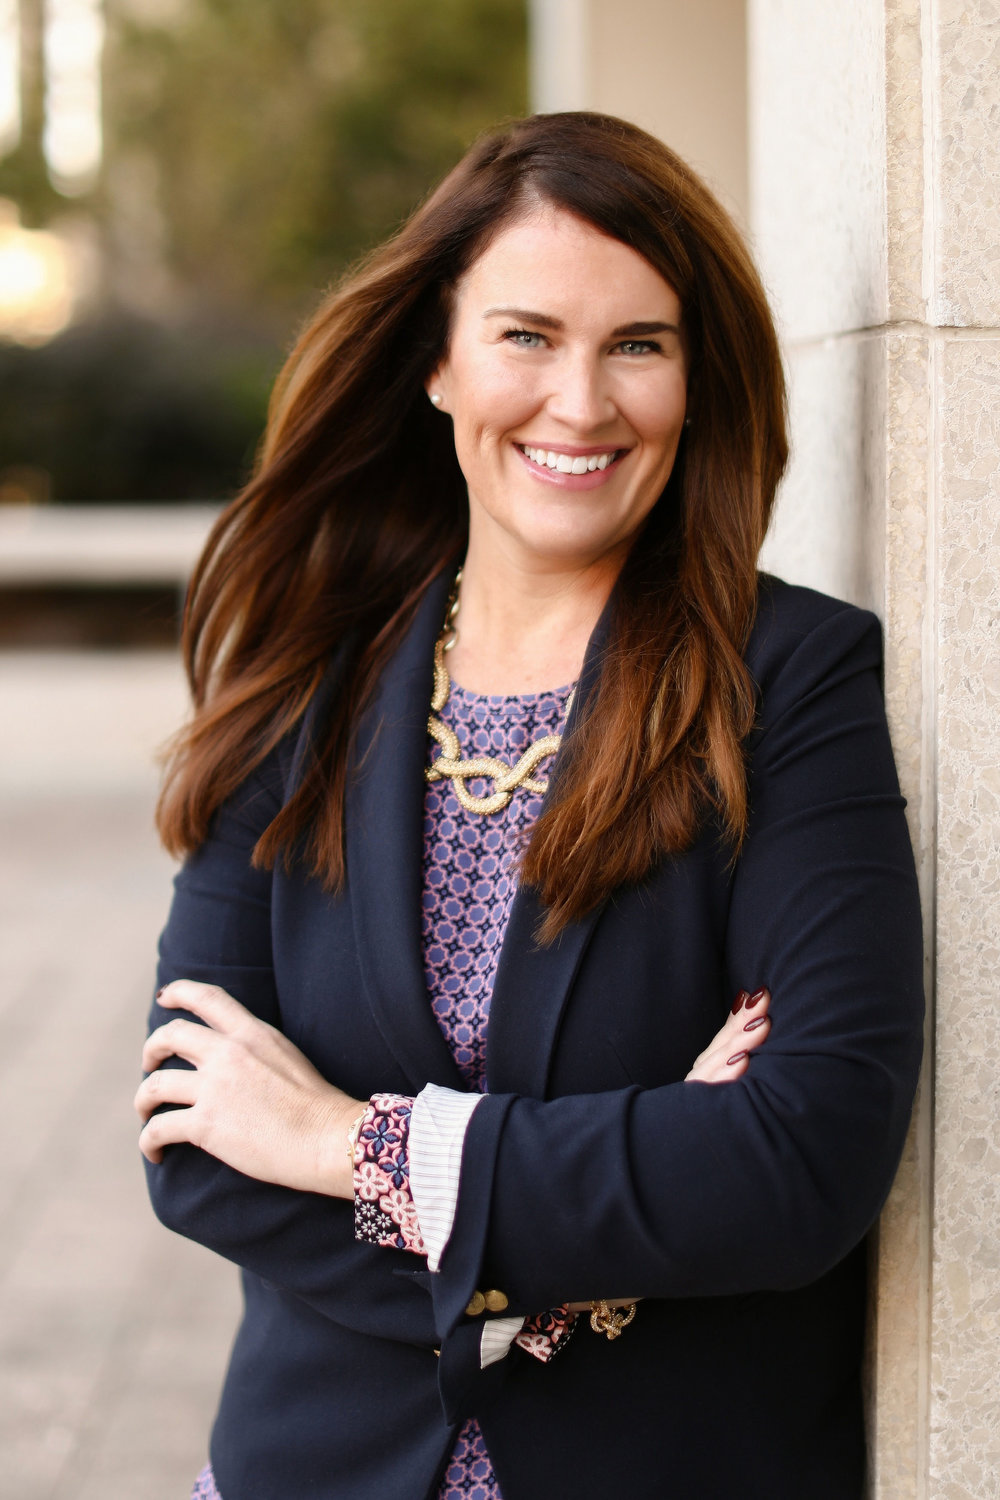 Beth Green, Managing Partner